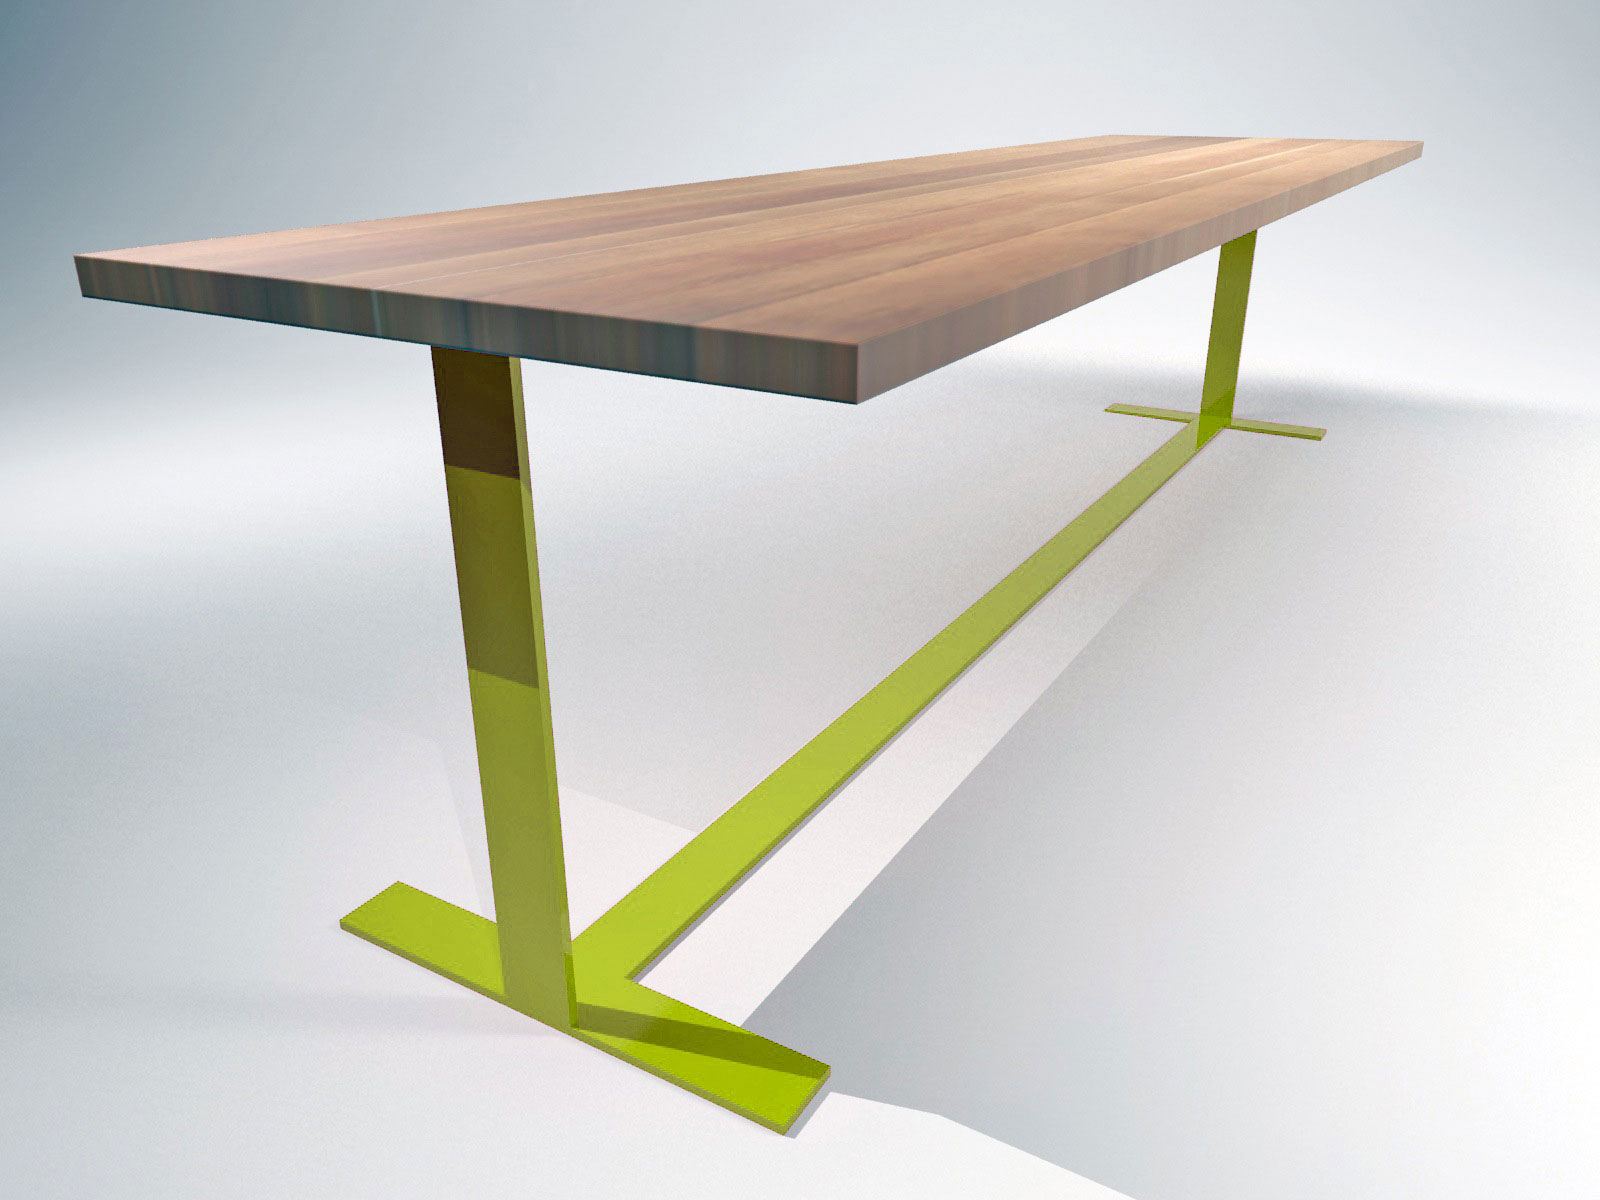 Tavola Table Green Mark White Inc